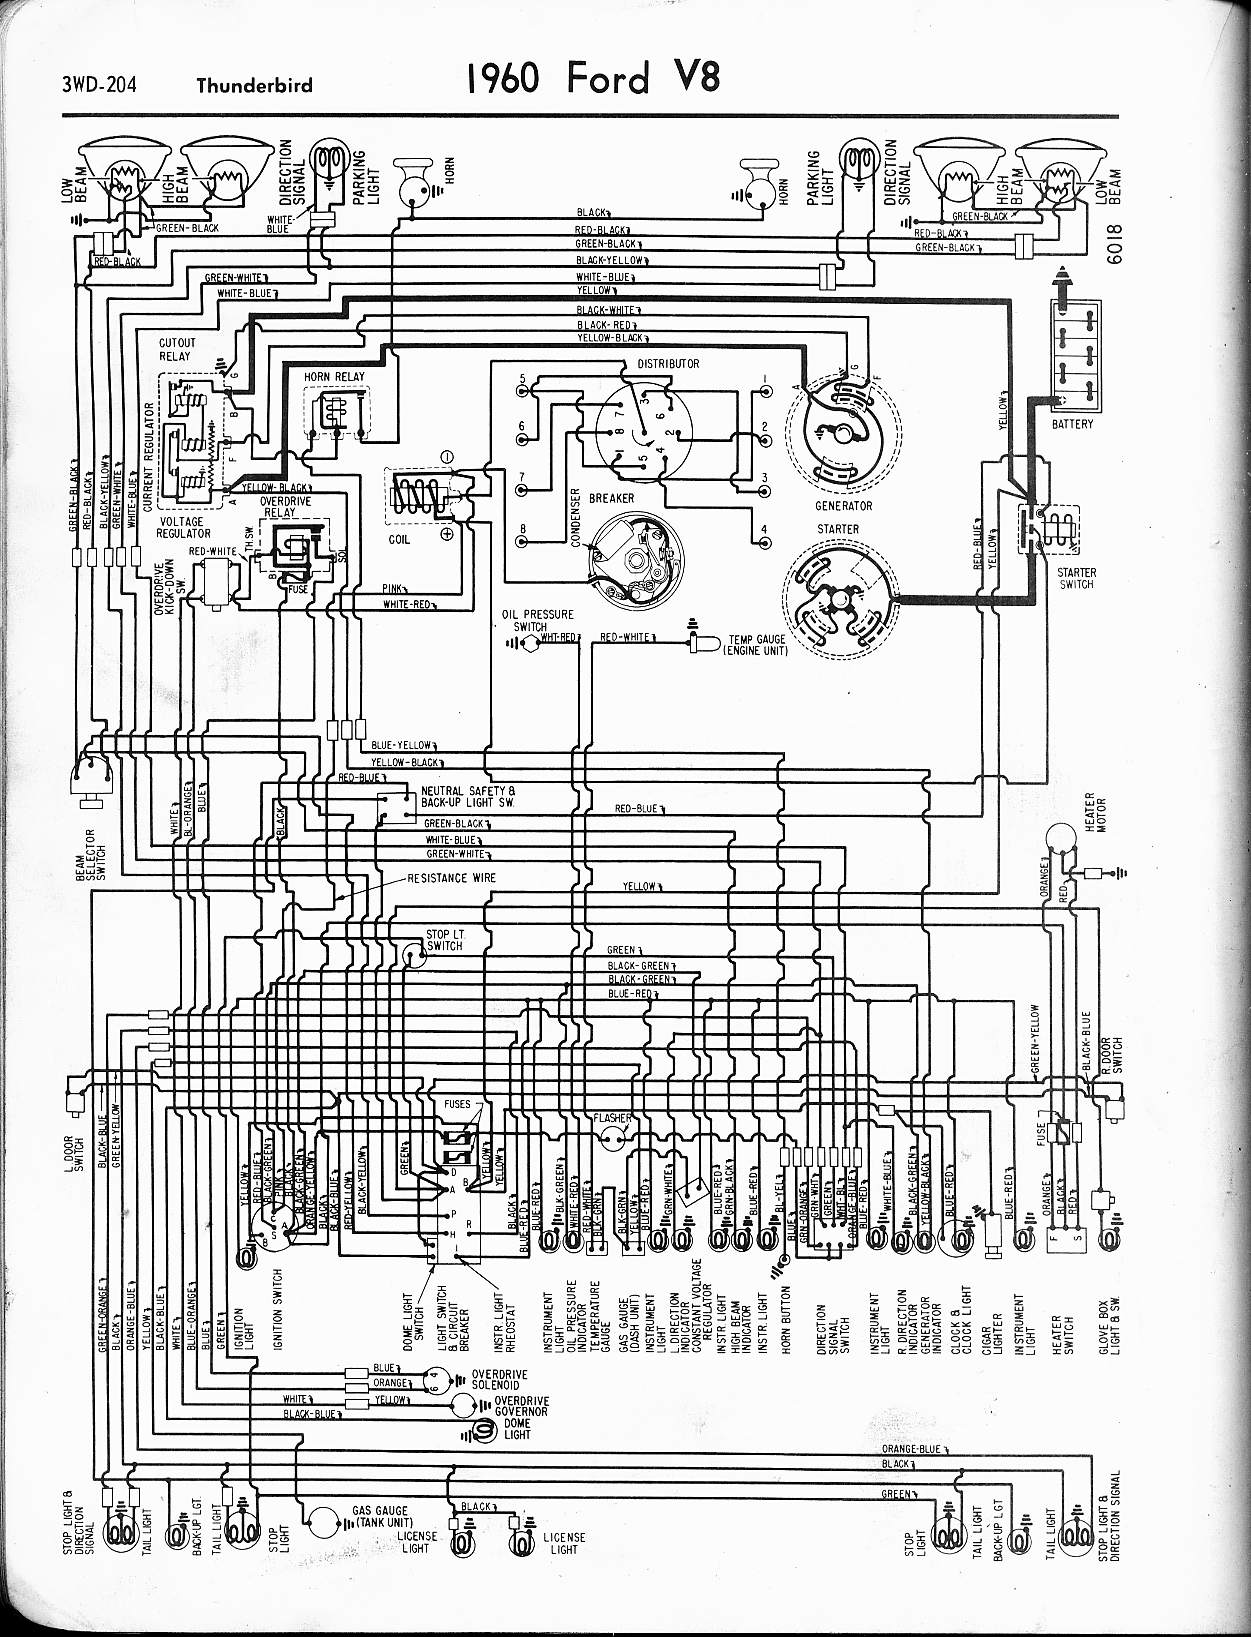 Stupendous Images Of 1961 Lincoln Continental Wiring Diagram Wiring Library Wiring Cloud Xempagosophoxytasticioscodnessplanboapumohammedshrineorg